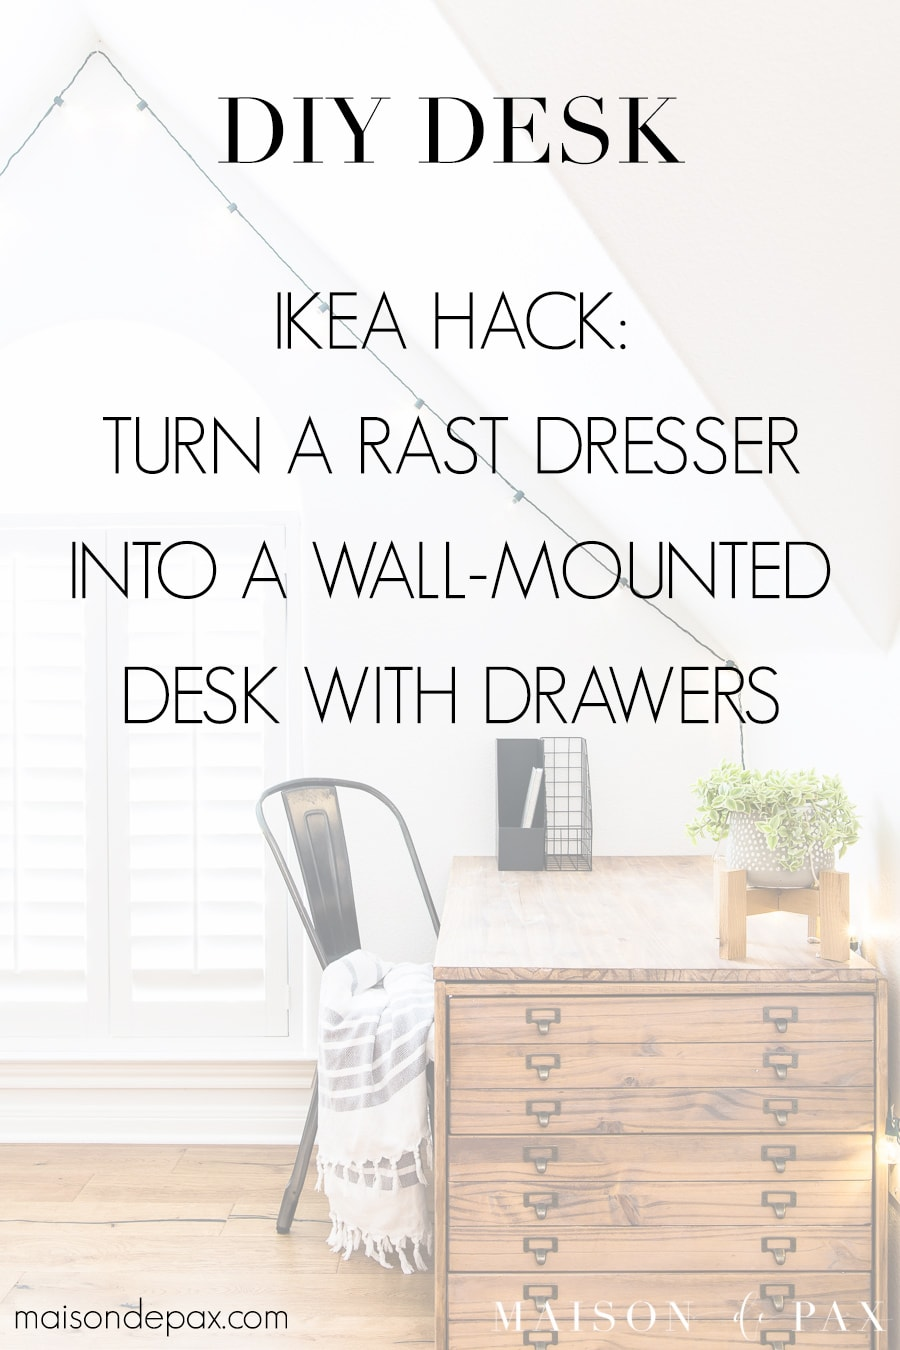 wood desk with drawers and text overlay: IKEA hack - turn a rast dresser into a wall-mounted desk | Maison de Pax